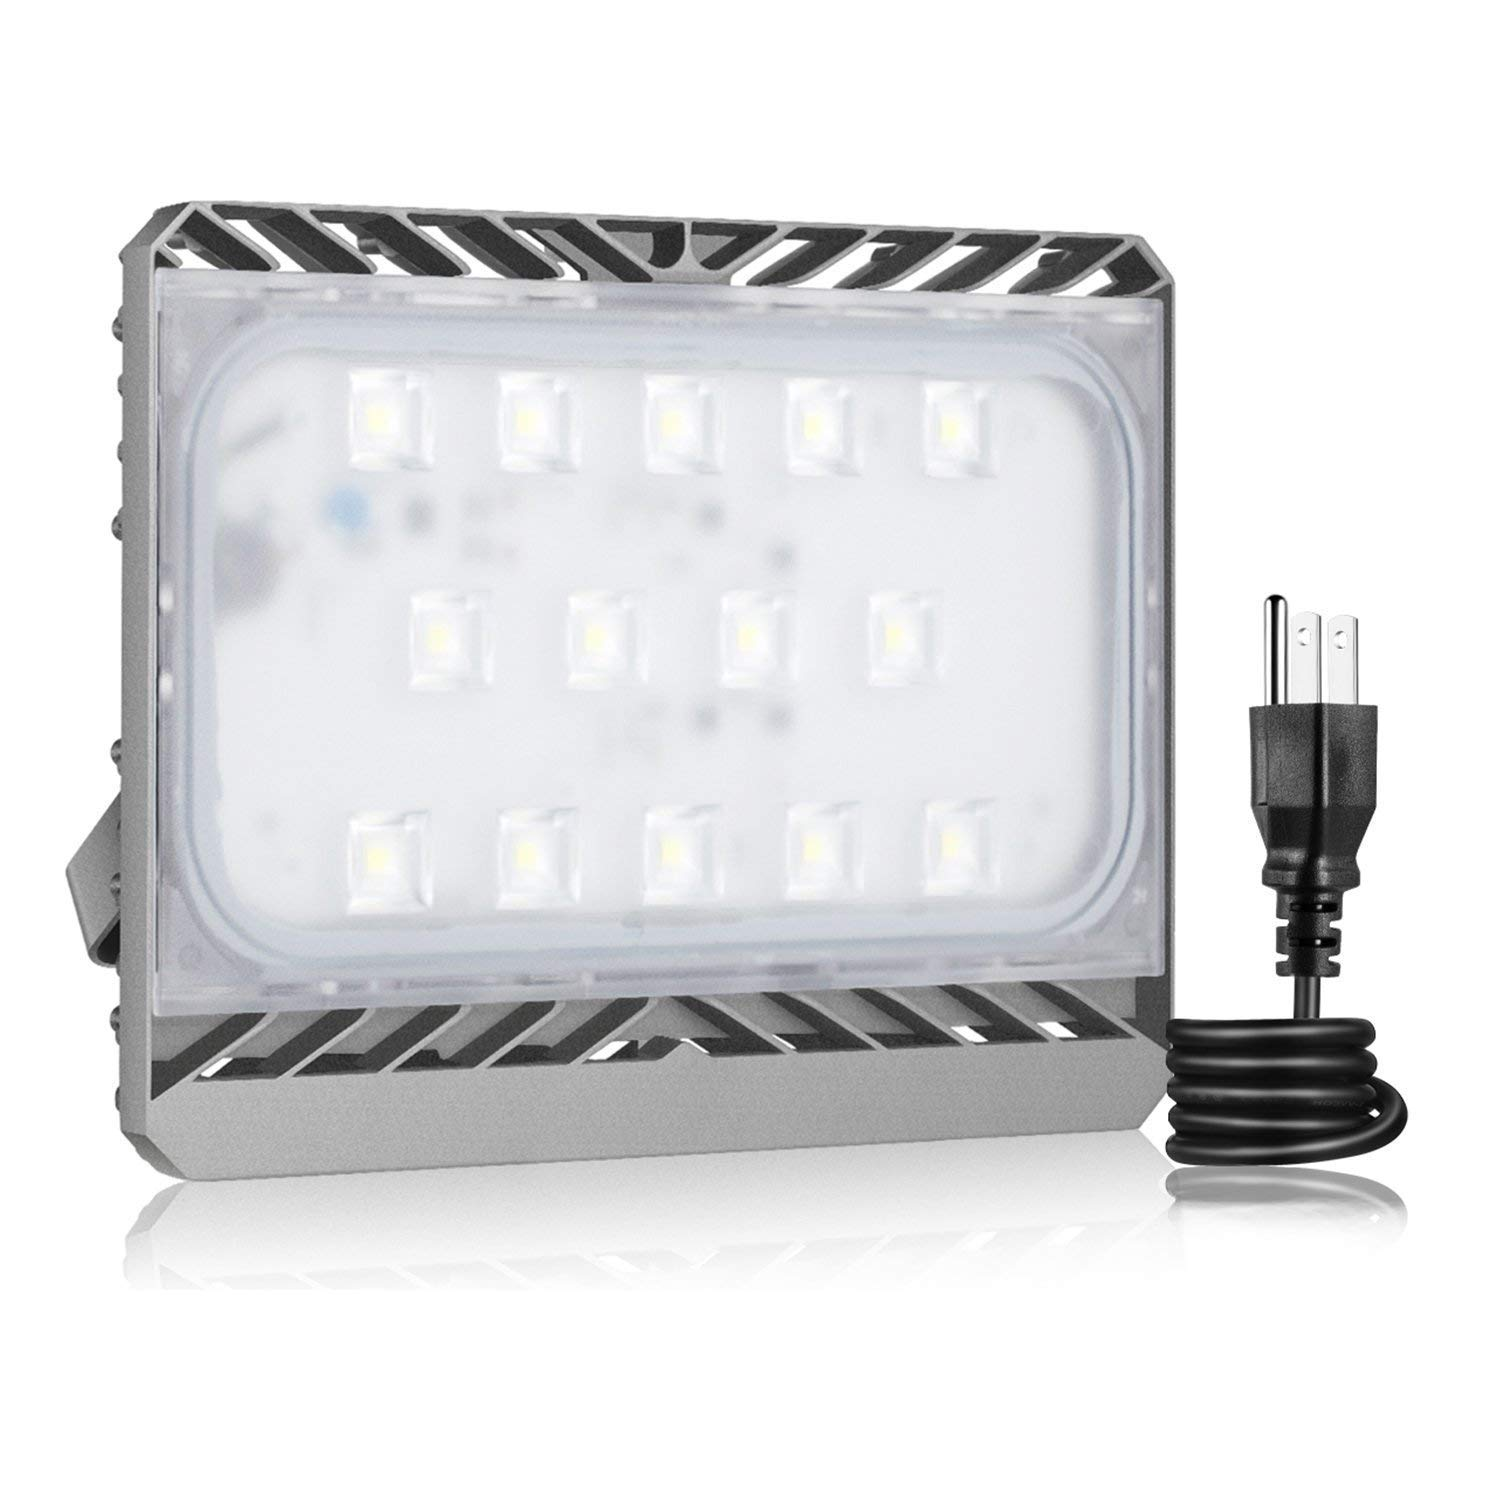 LED Flood Light Outdoor, STASUN 70W 6300lm LED Security Lights, 6000K Daylight, Built with Cree LED Chips, Waterproof, Great for Home, Yard, Garage